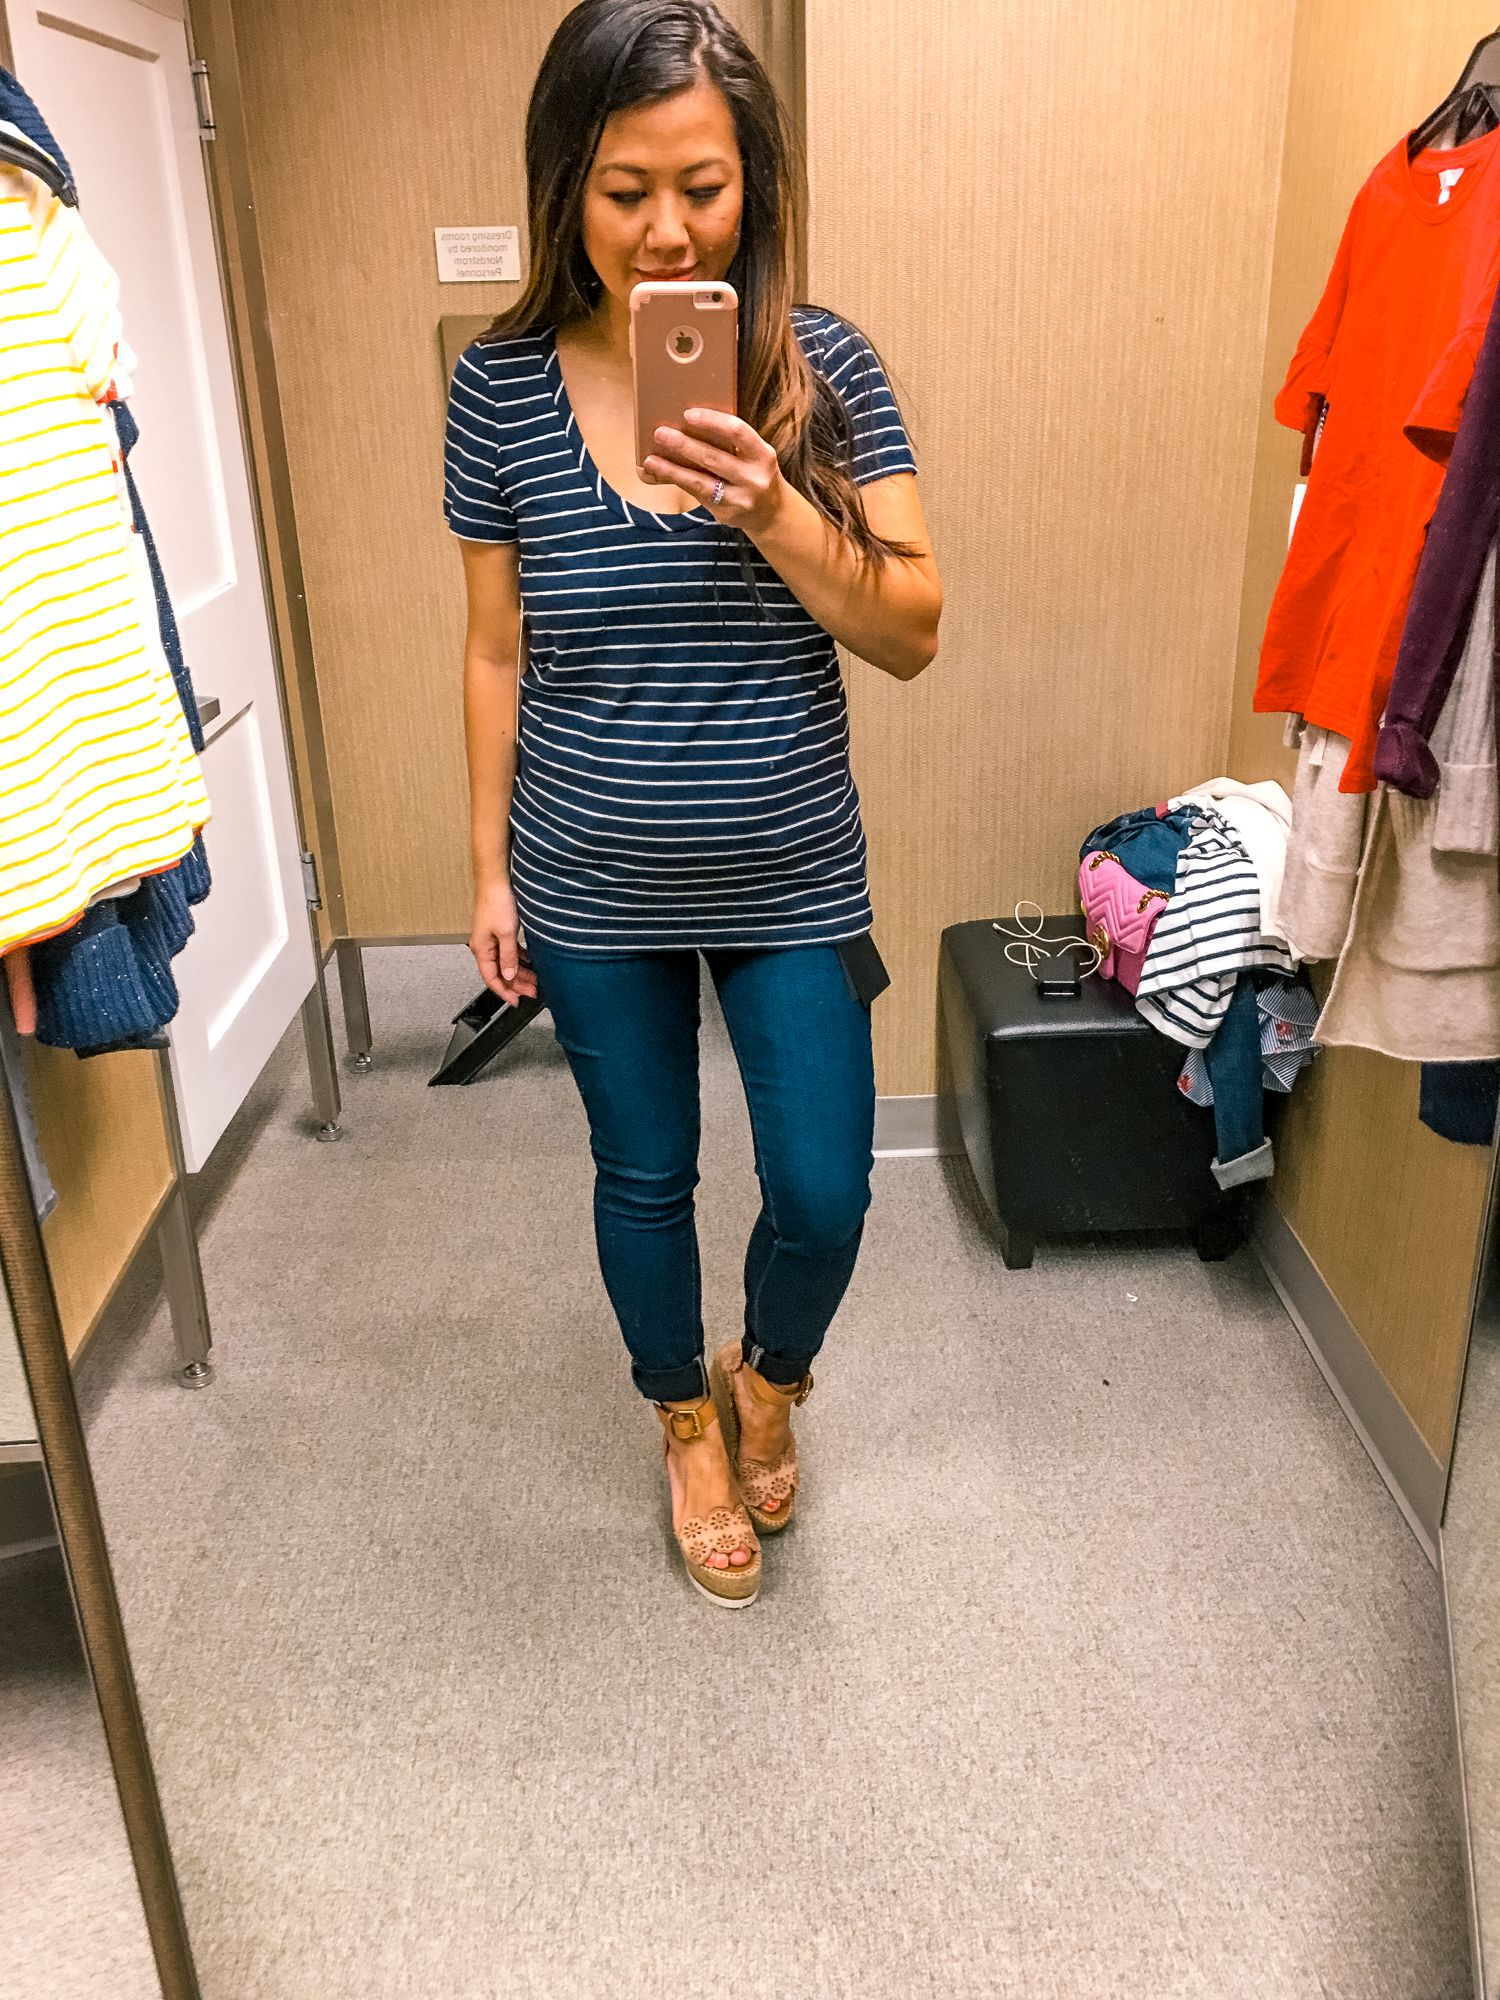 a89434785d1 2018 Nordstrom Anniversary Sale Review Haul